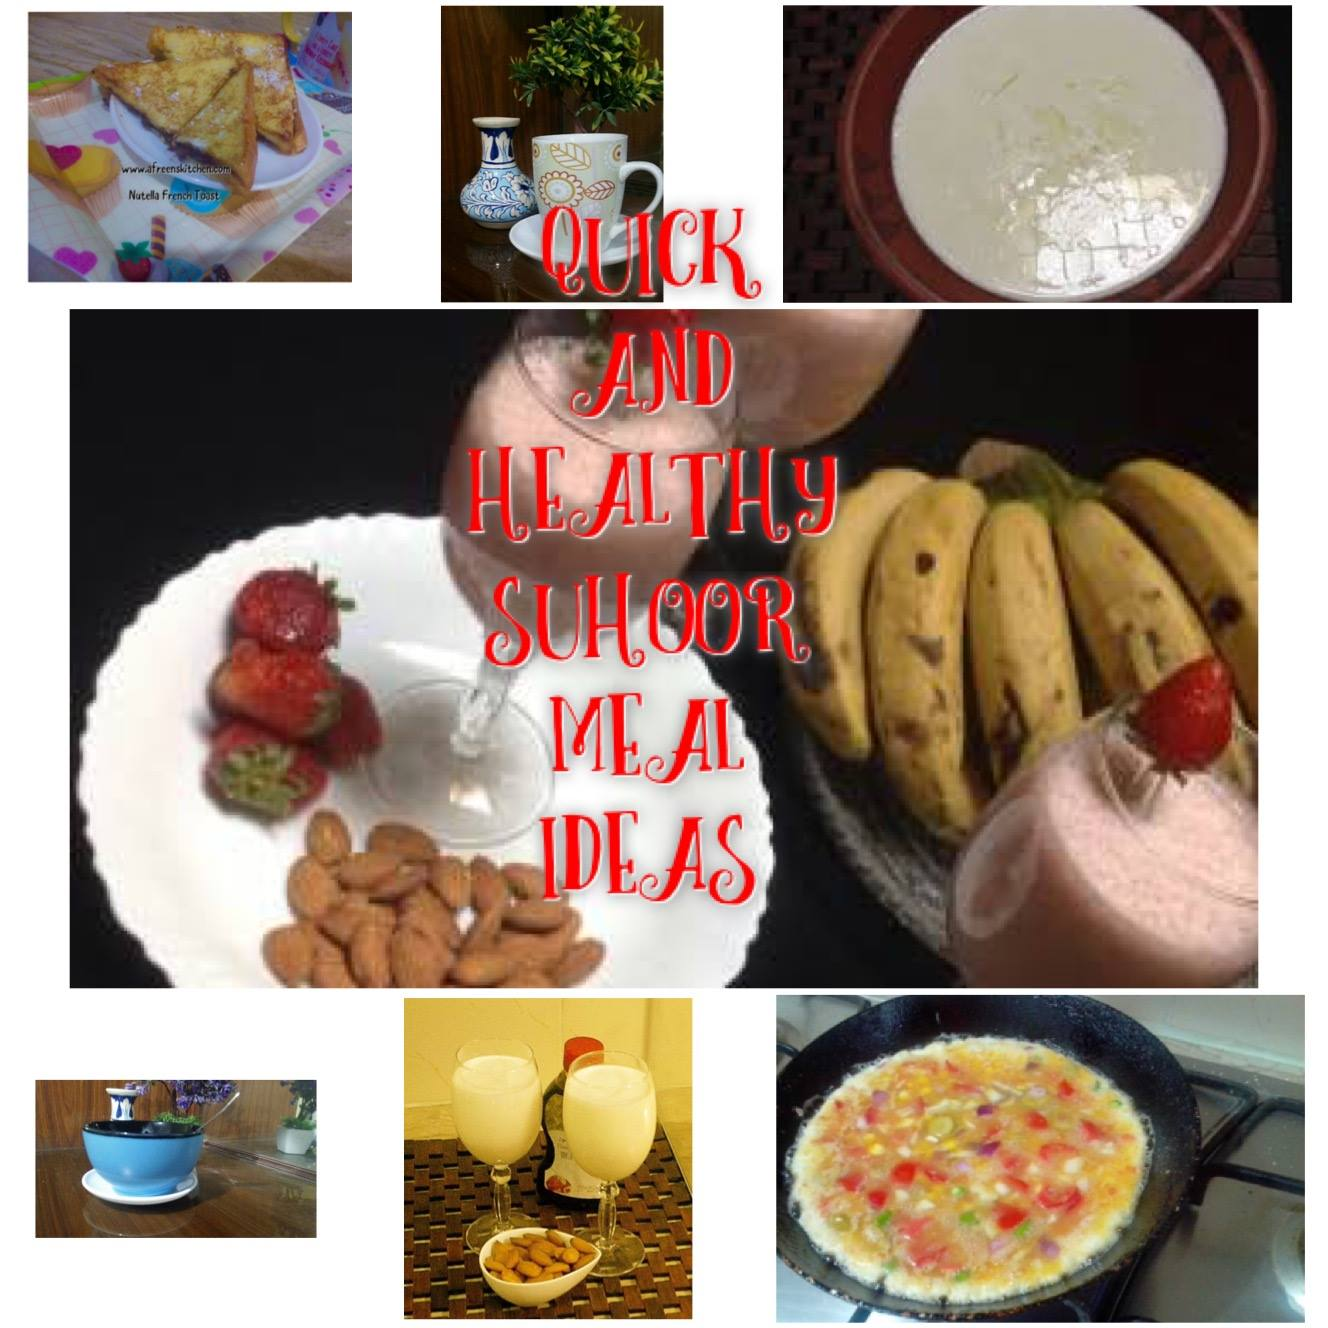 Ramadan day 4 quick and healthy suhoor and iftar meal ideas ramadan day 4 quick and healthy suhoor and iftar meal ideas forumfinder Image collections